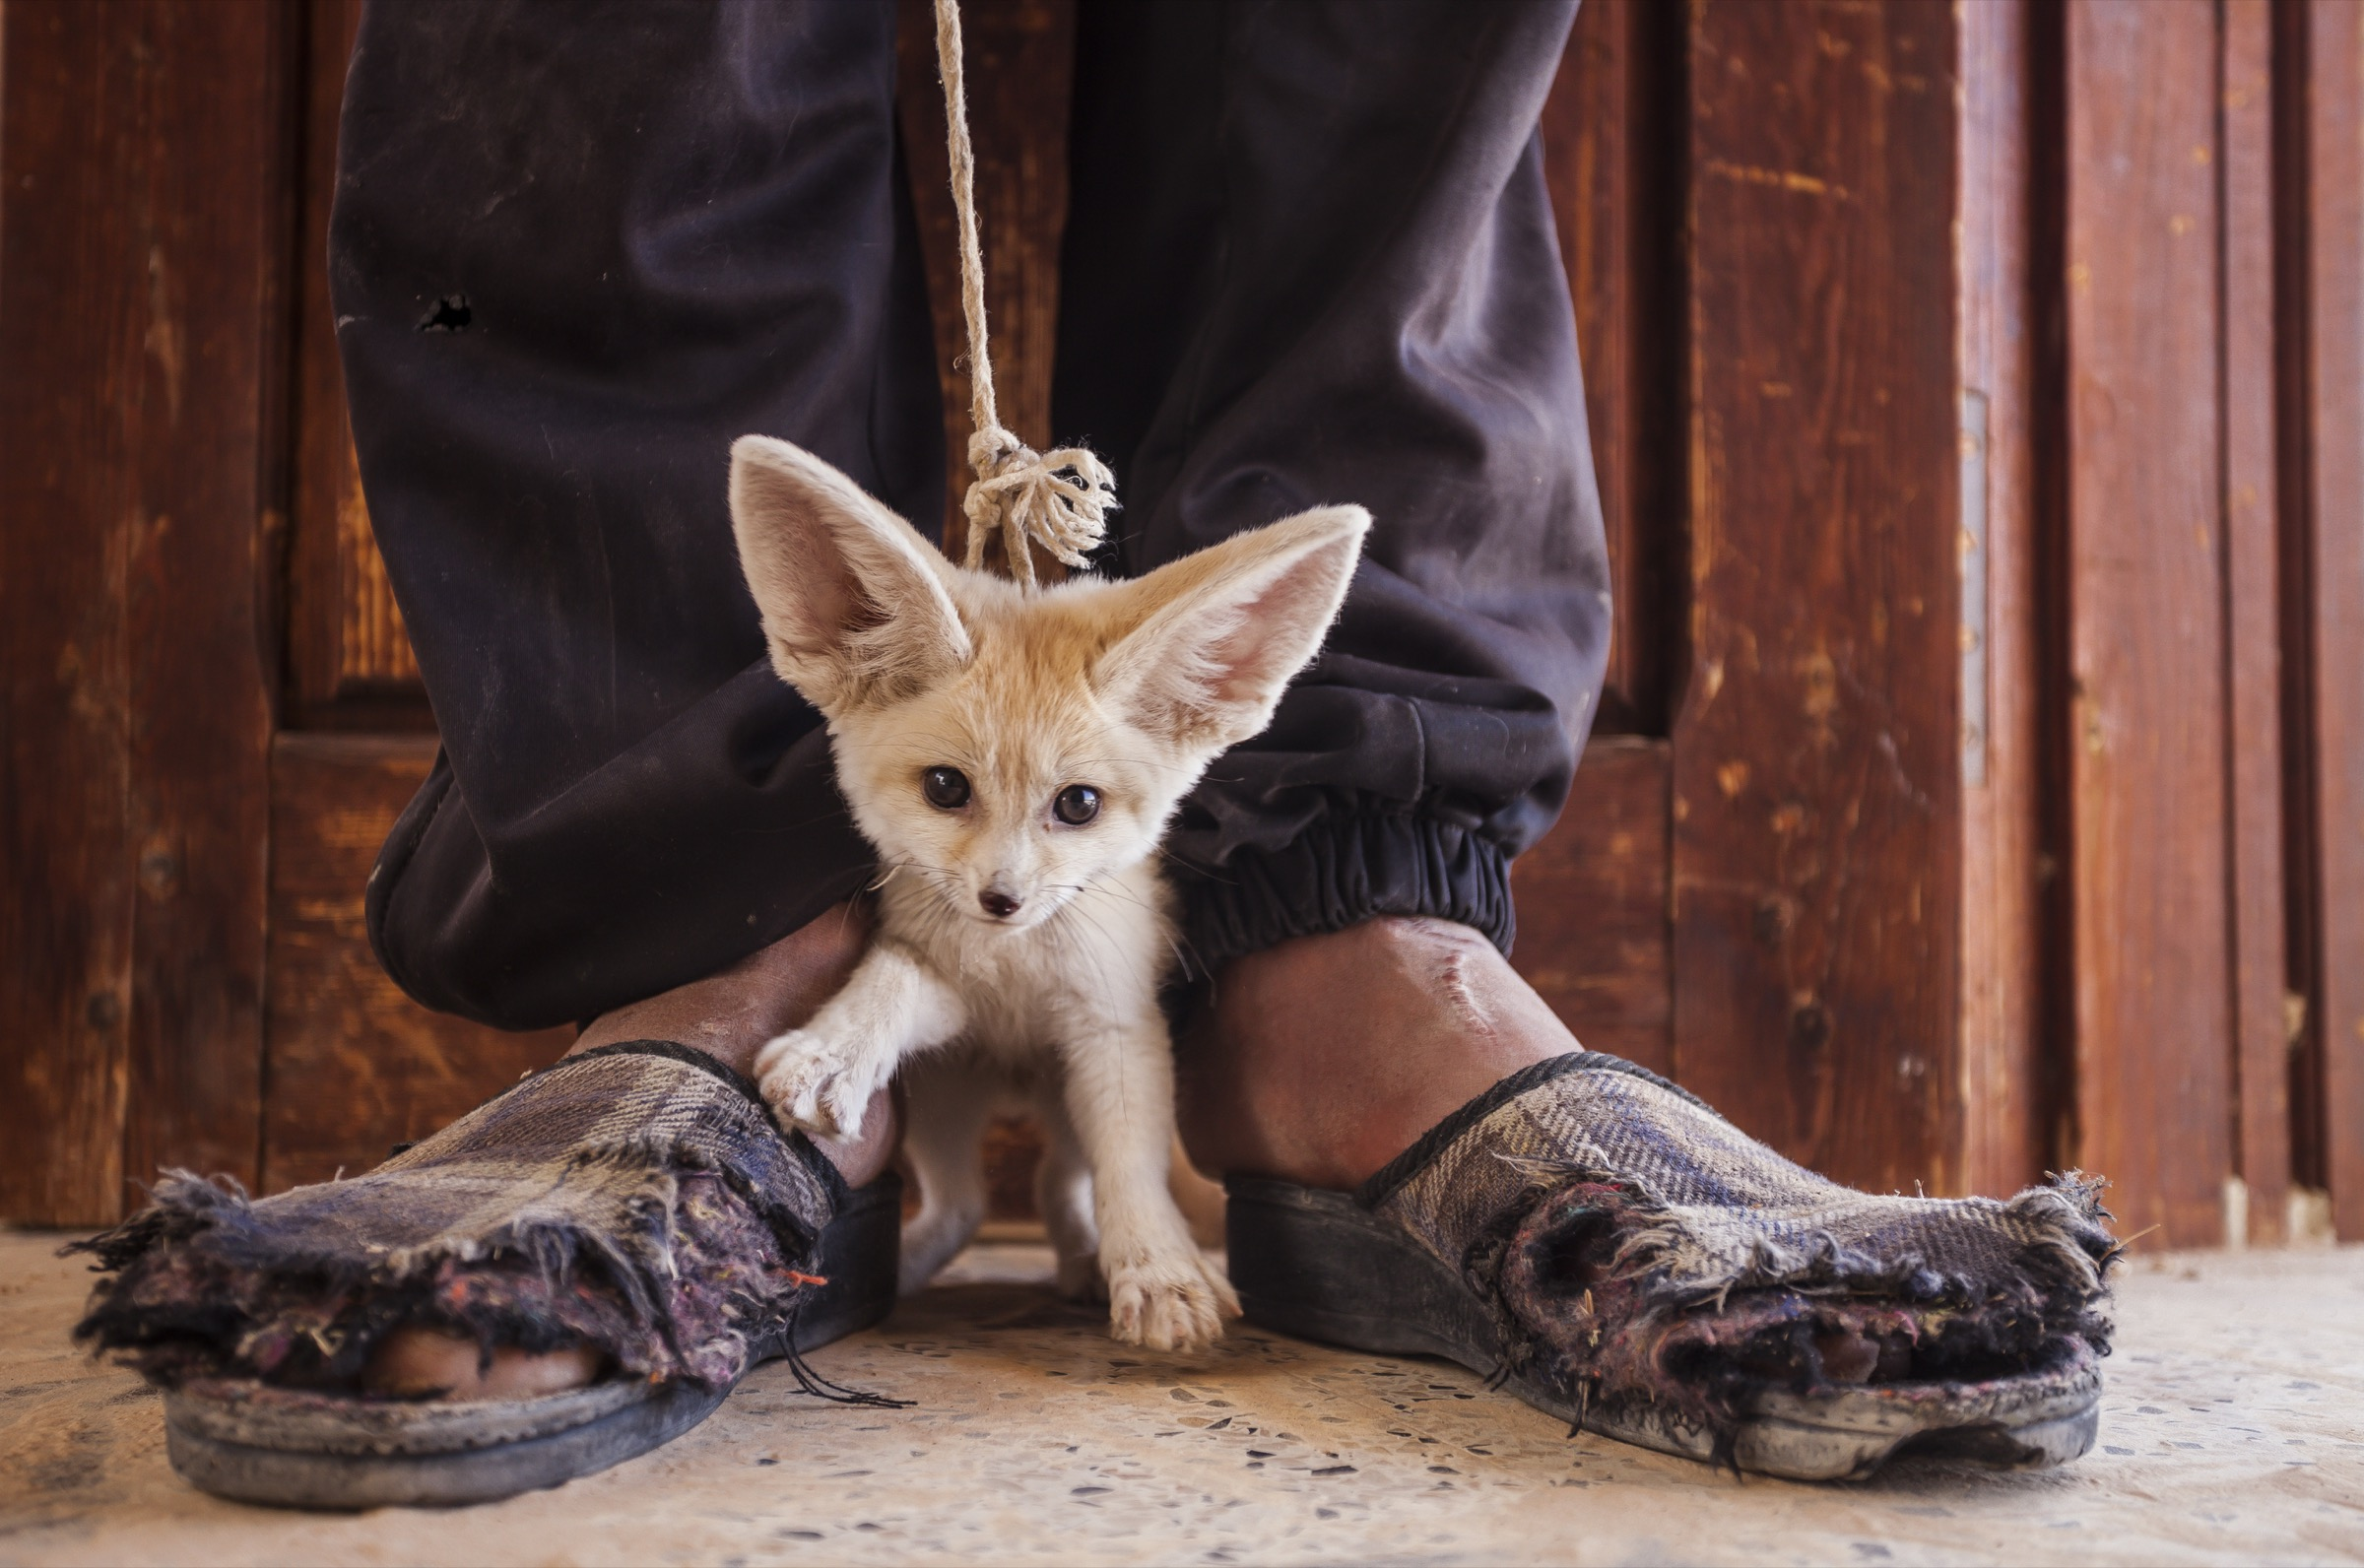 This young fennec fox pup was captured in the wild and offered to photographer Bruno D'Amicis for sale in Tunisia.